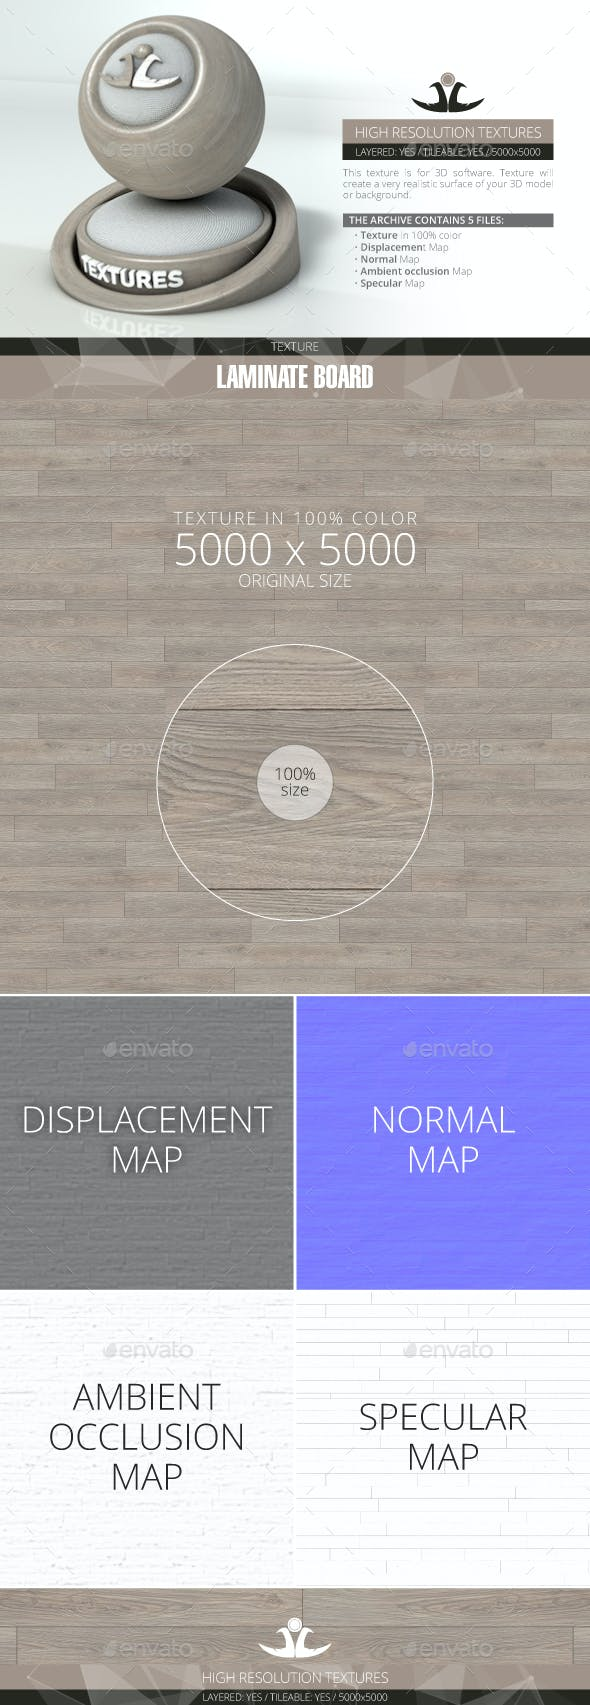 Laminate Board 53 - 3DOcean Item for Sale